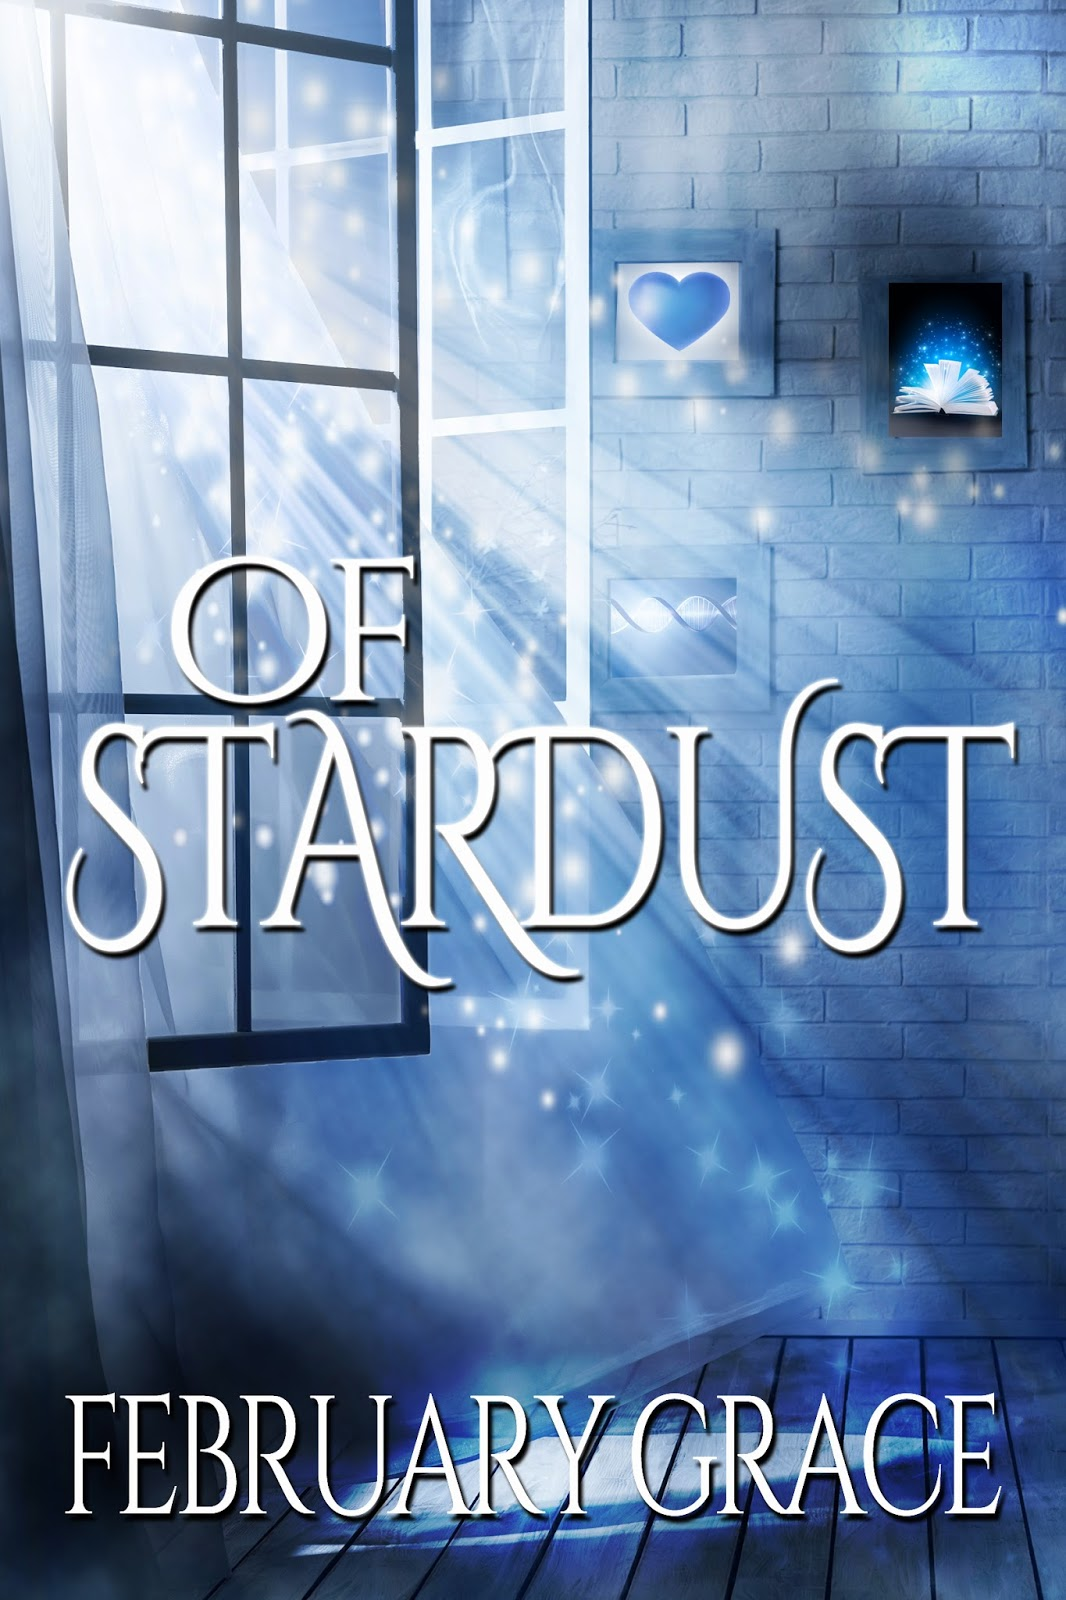 http://www.amazon.com/Of-Stardust-ebook/dp/B00GACFFKW/ref=sr_1_3?s=digital-text&ie=UTF8&qid=1383174682&sr=1-3&keywords=february+grace